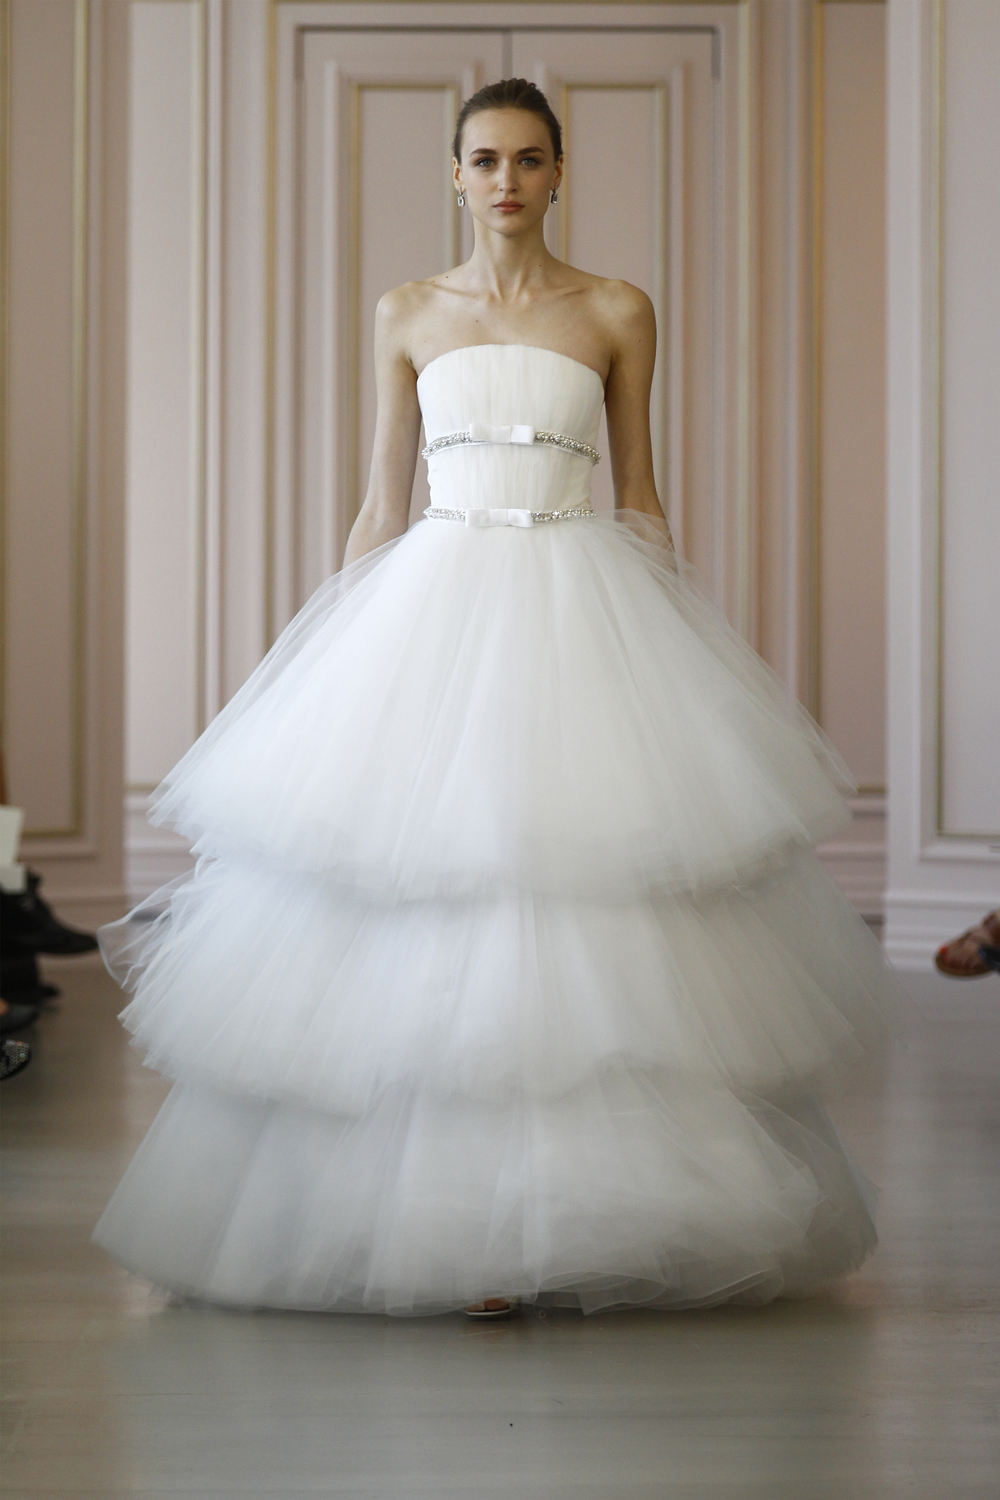 Stasha White tiered tulle ball gown wedding dress, jewel encrusted grosgrain ribbon detail. Silver and crystal earring, white ribbon embroidered sandal.